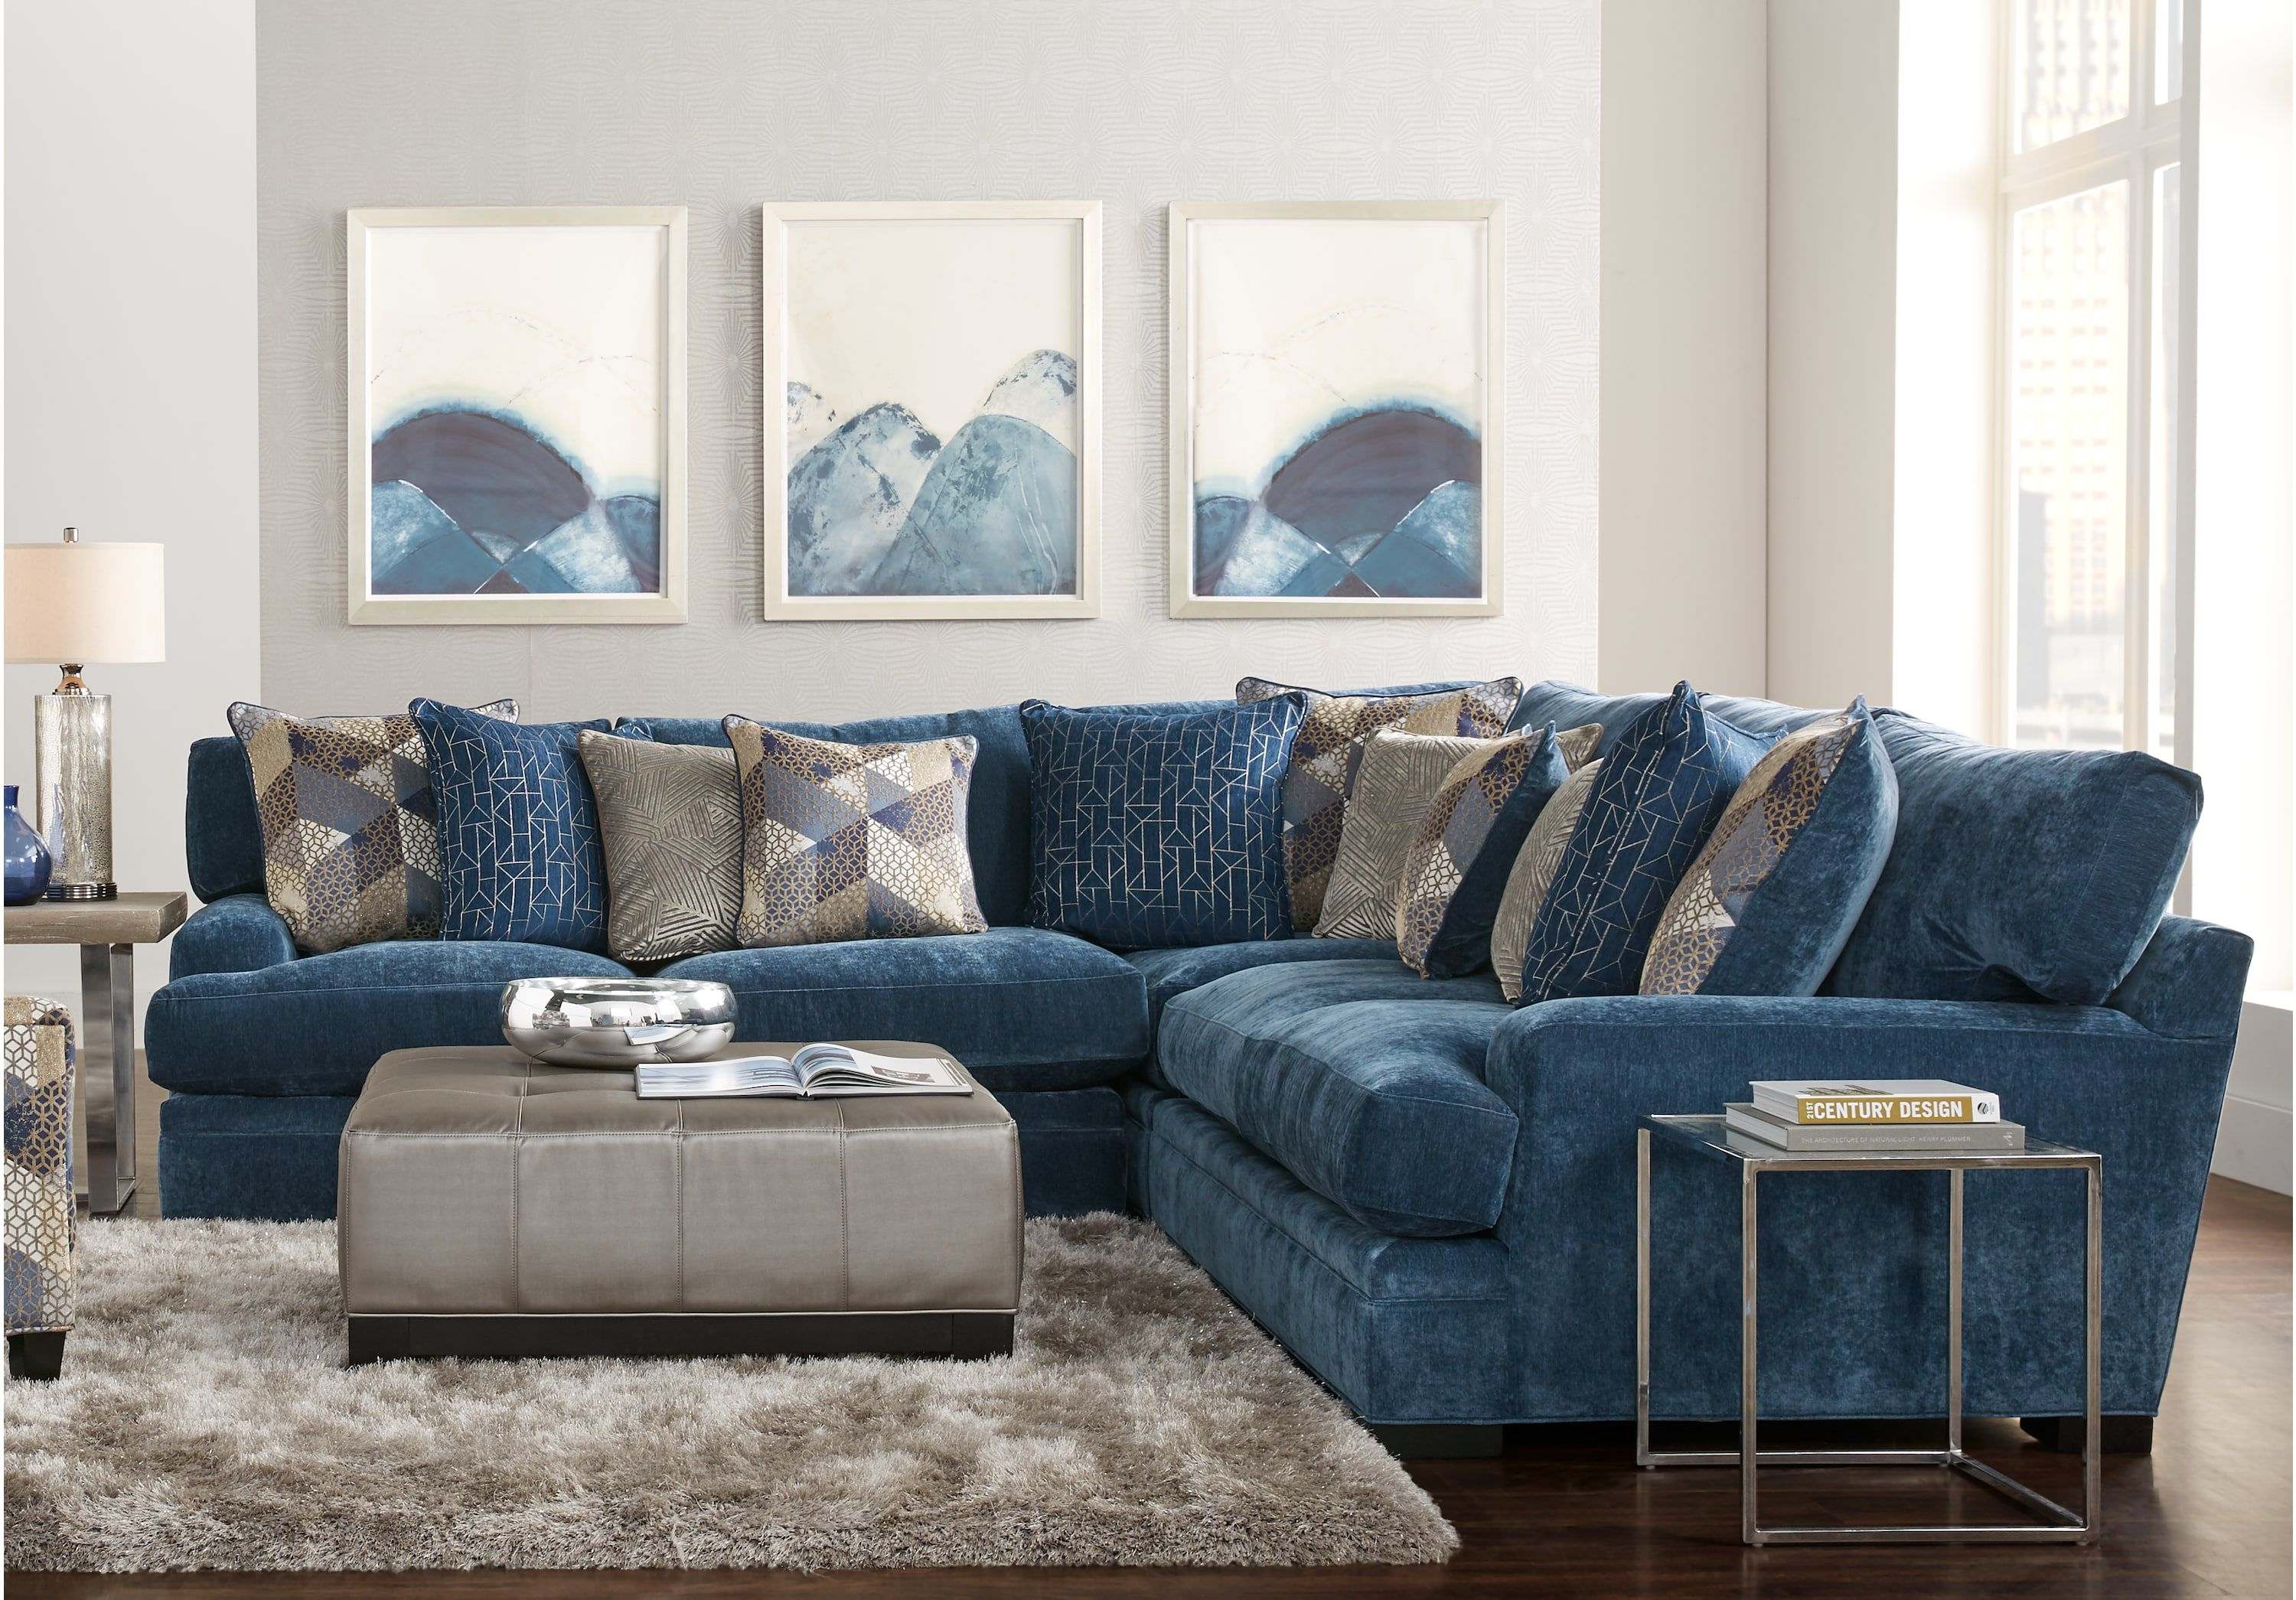 Cindy Crawford Home Beverlywood Navy 3 Pc Sectional Living Room Sectional Blue Sofas Living Room Living Room Sets